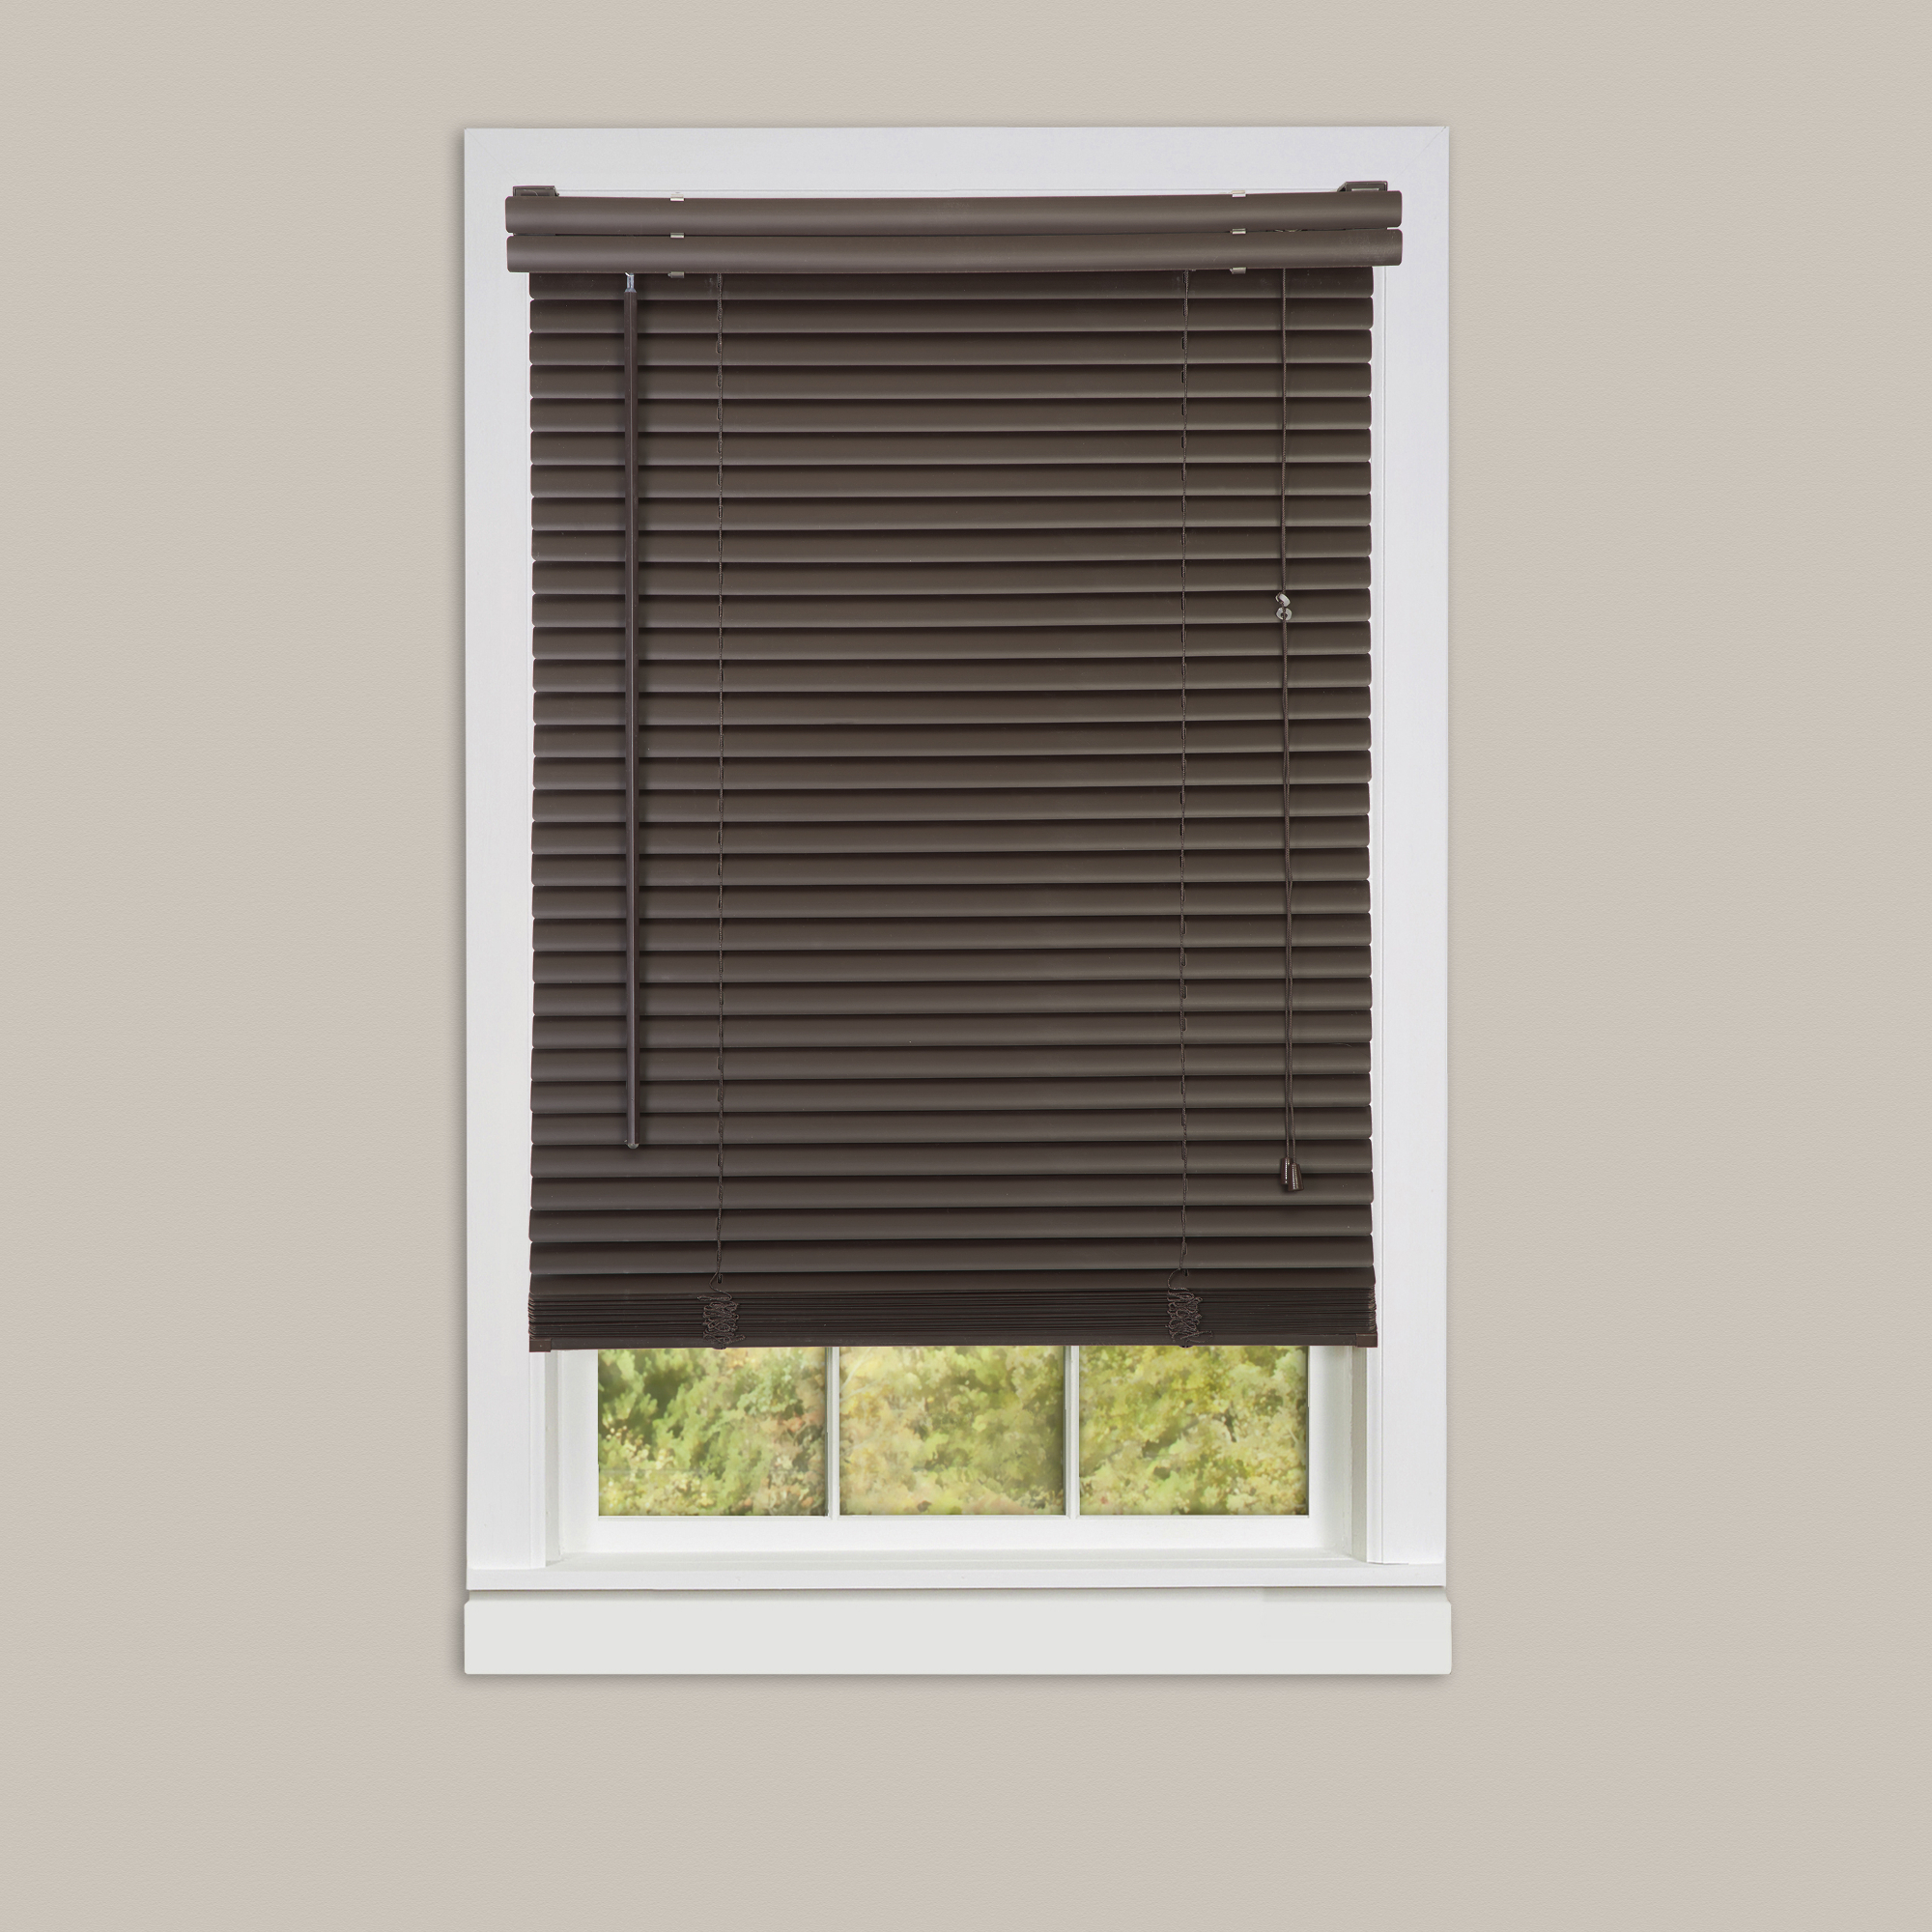 36 x 72 blinds roll up inexpensive mini blinds 3672 vinyl chocolate 36x72 mazer wholesale inc